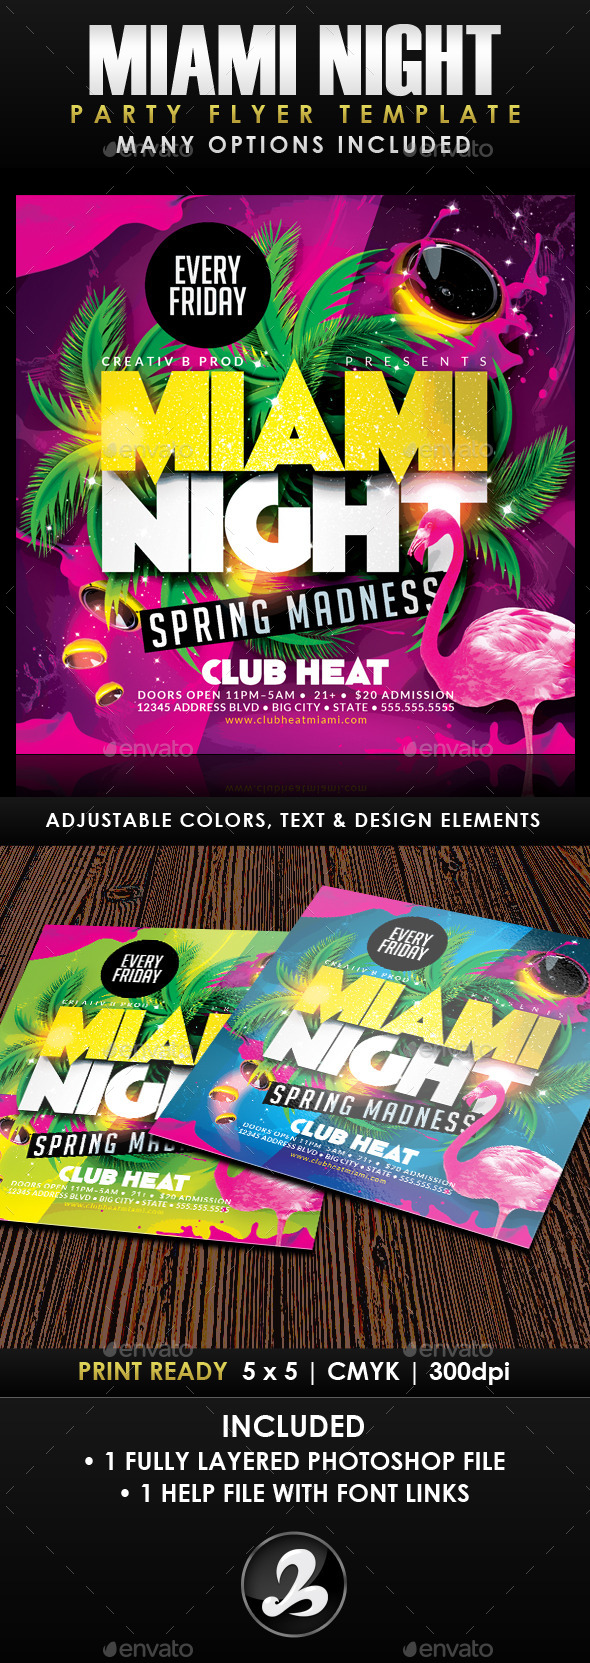 Miami Night Party Flyer Template - Clubs & Parties Events